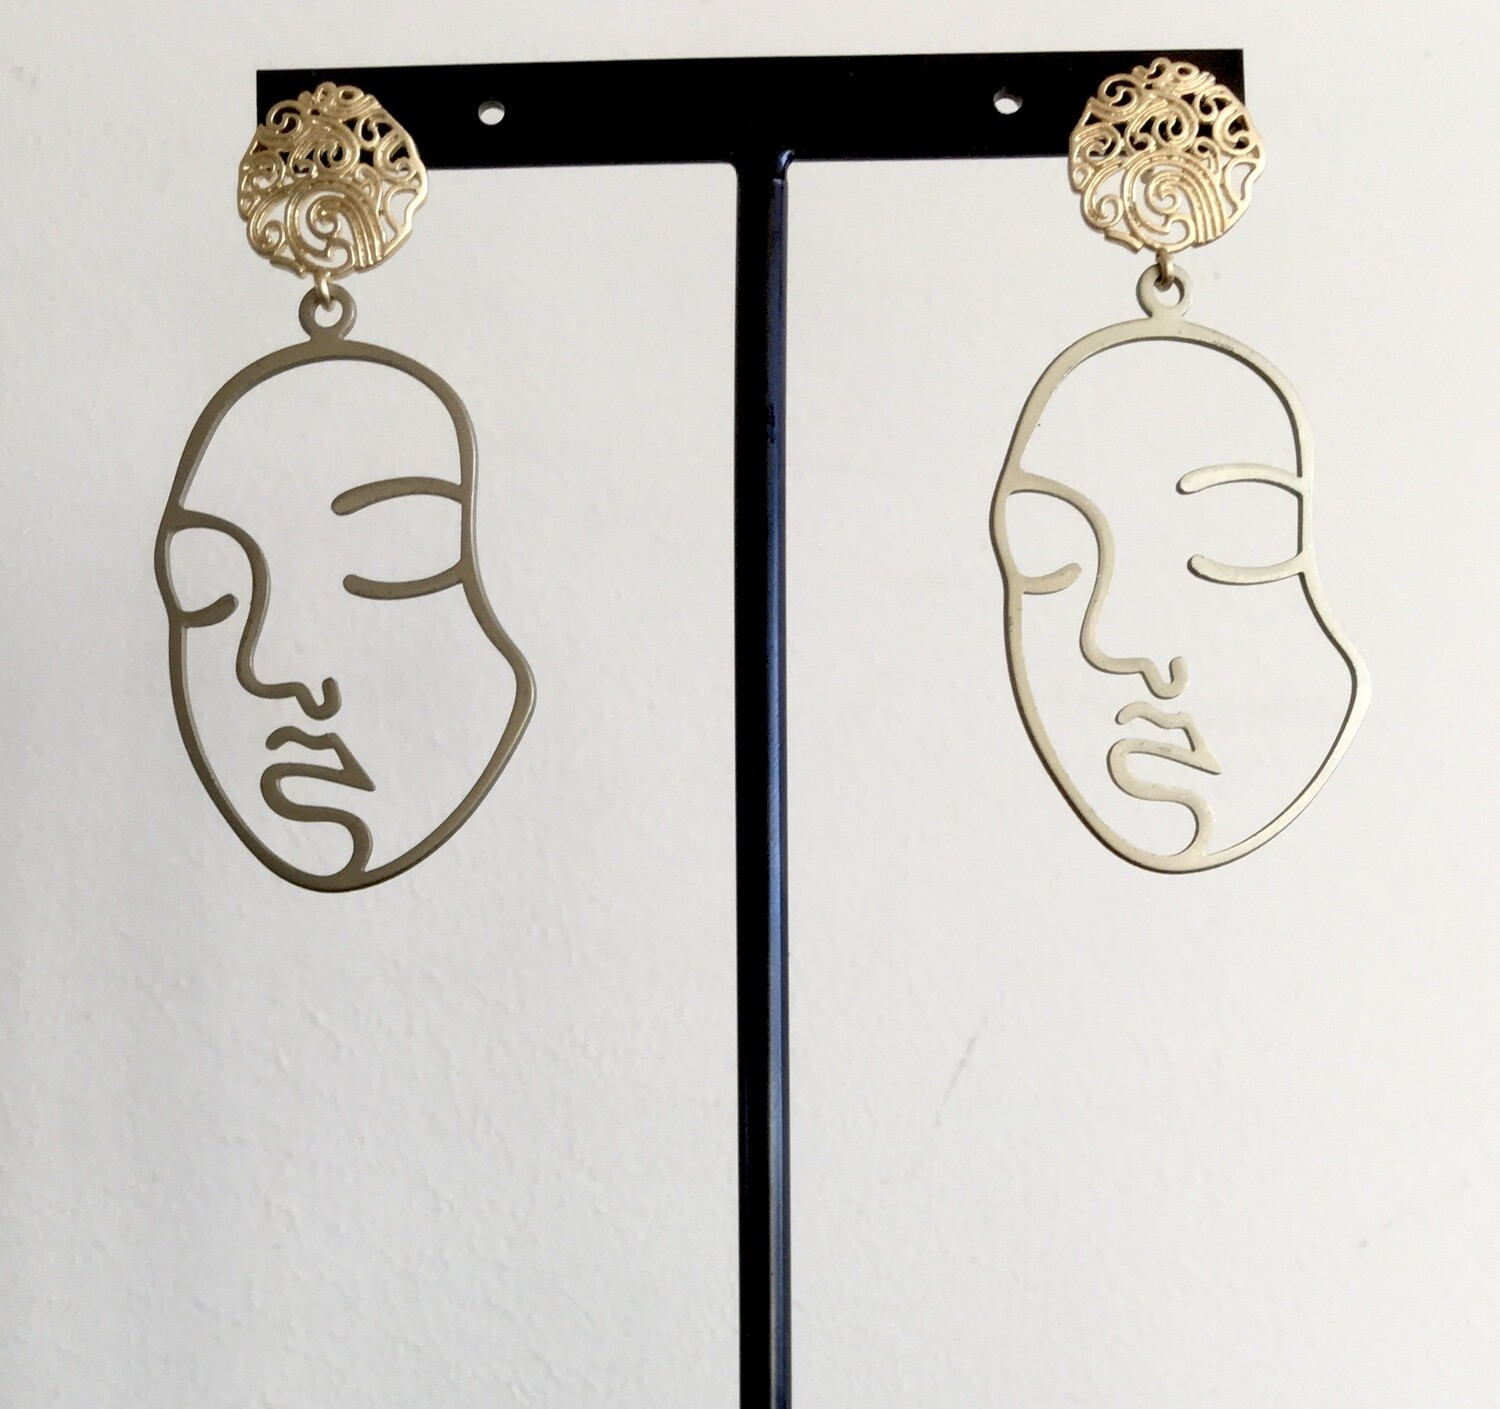 Sleeping face earrings